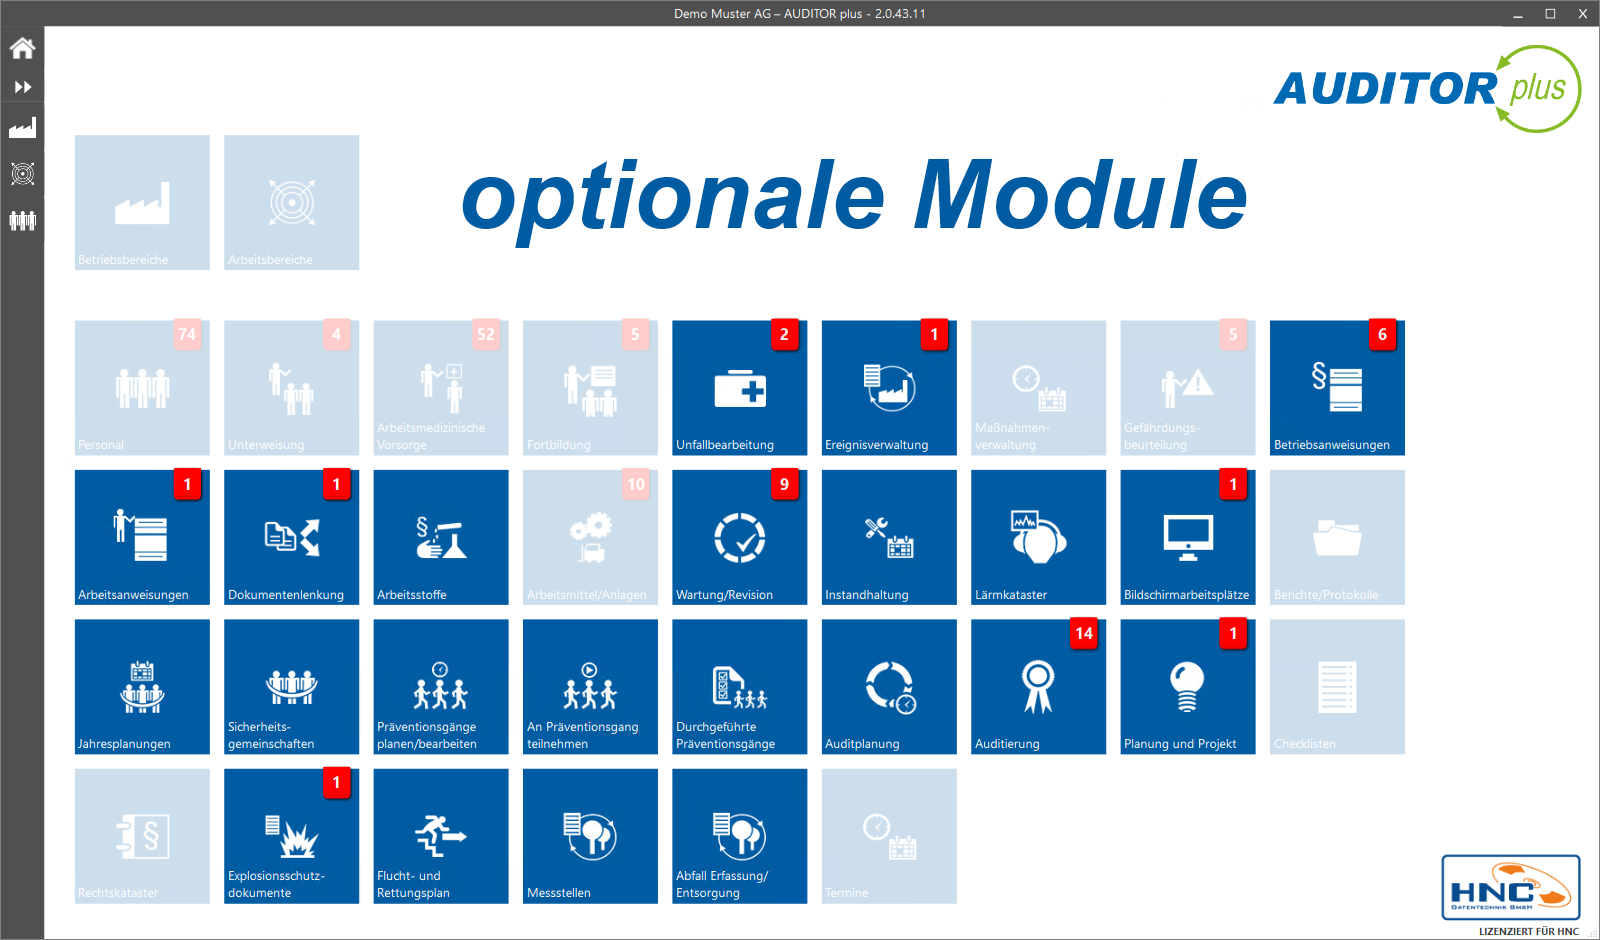 AUDITOR plus optionale Module